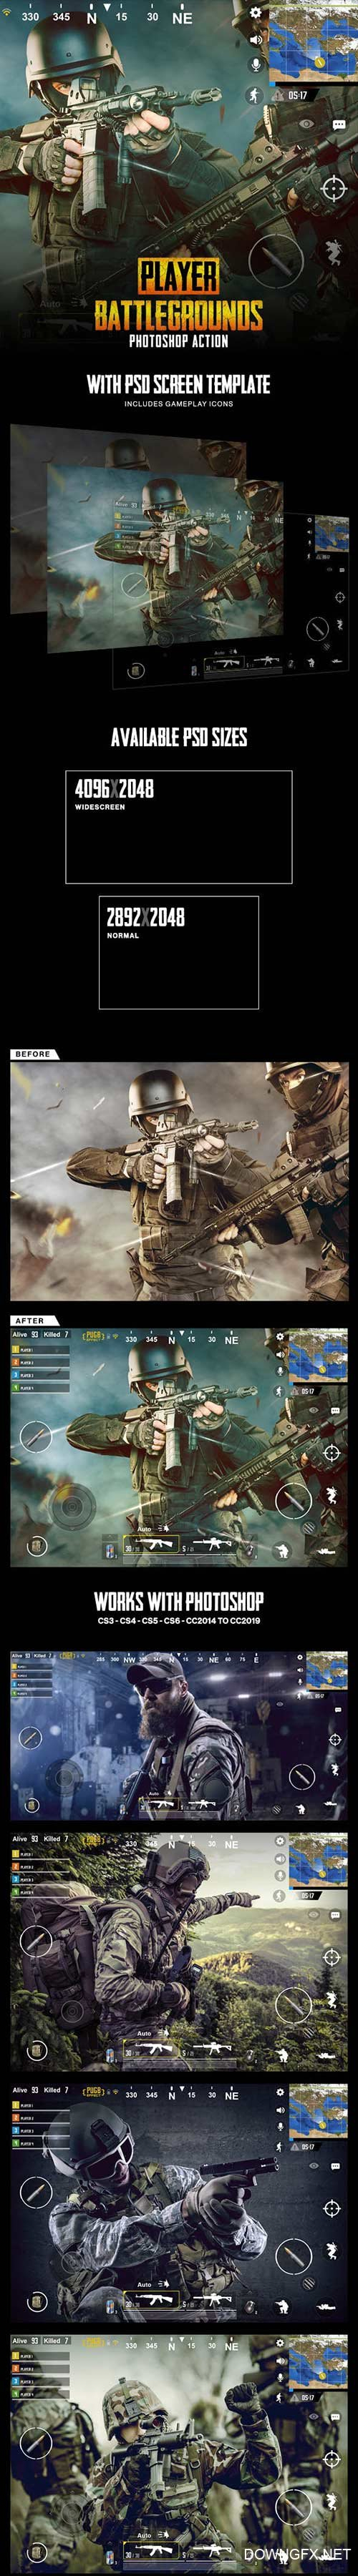 Graphicriver - Player Battlegrounds Photoshop Action 23123275